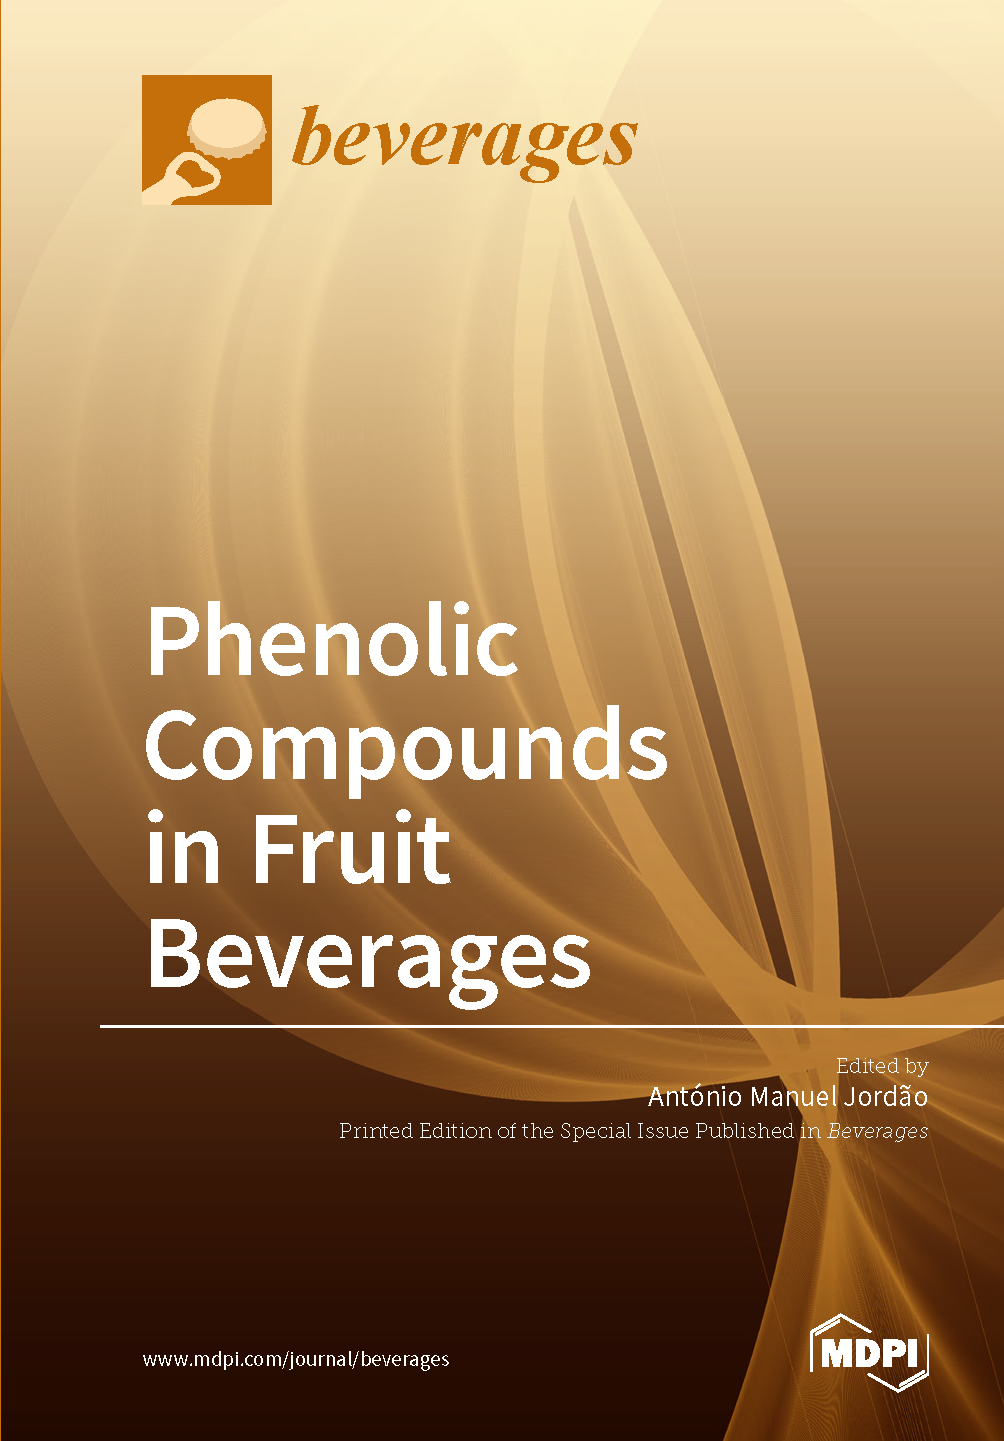 Phenolic Compounds in Fruit Beverages